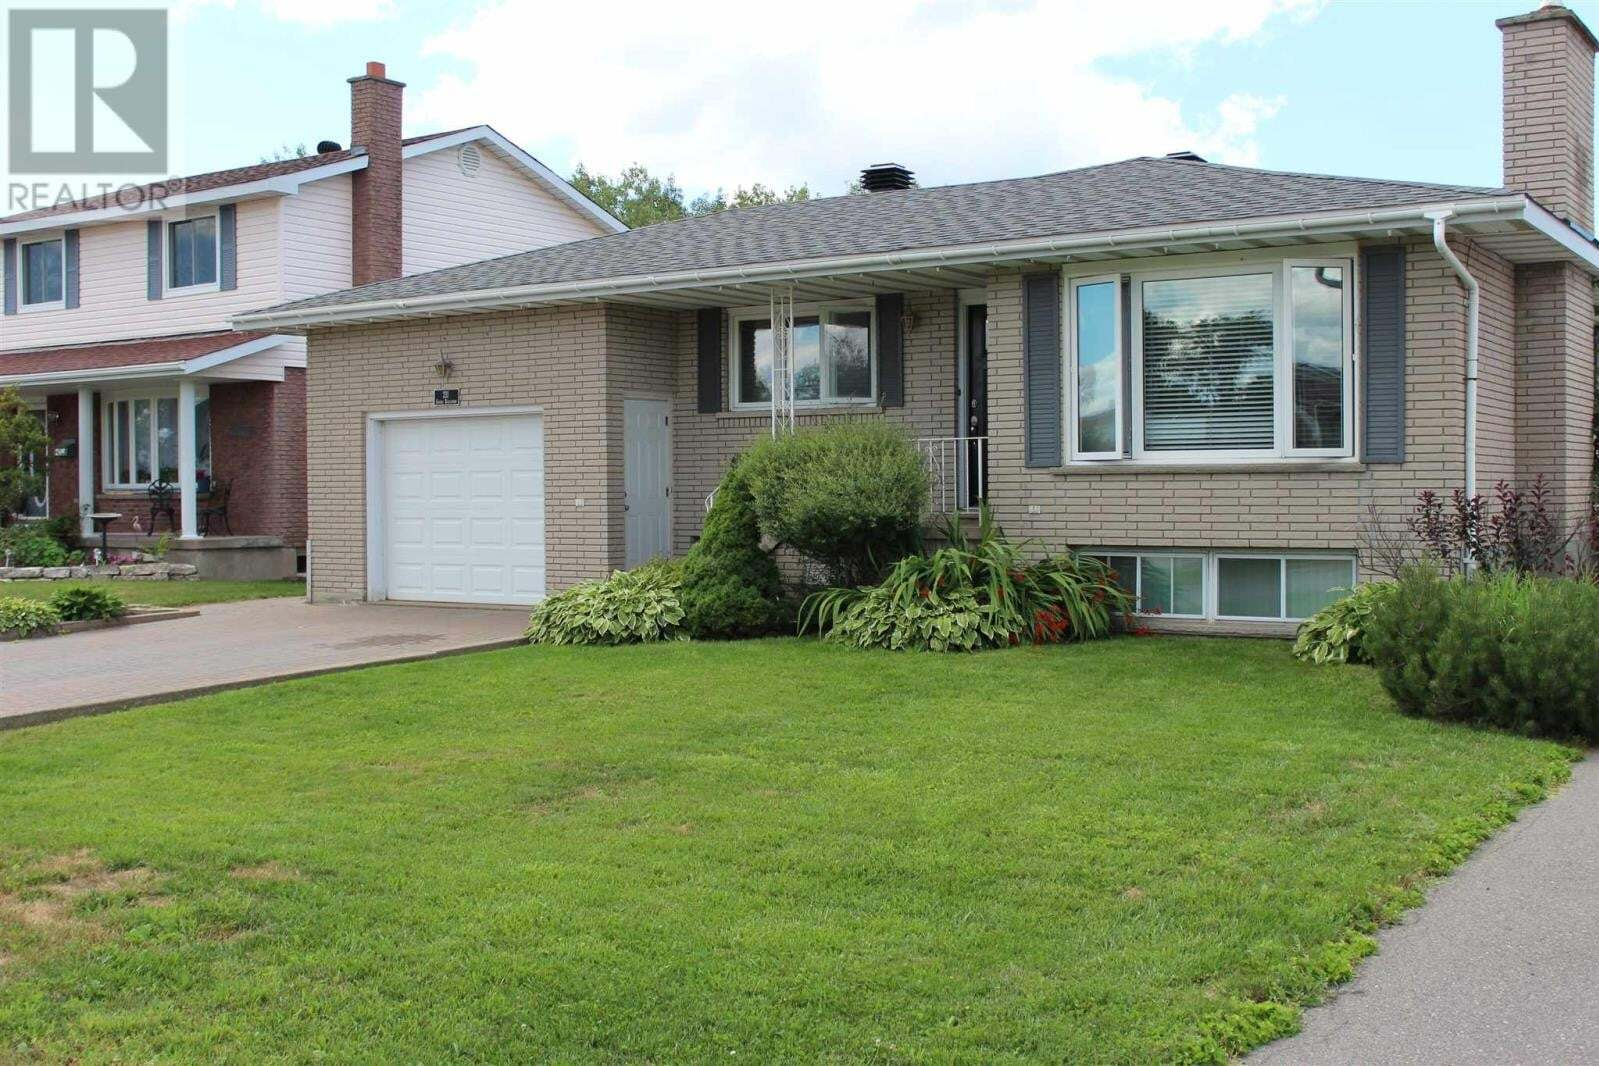 House for sale at 211 Grand Blvd Sault Ste. Marie Ontario - MLS: SM129348